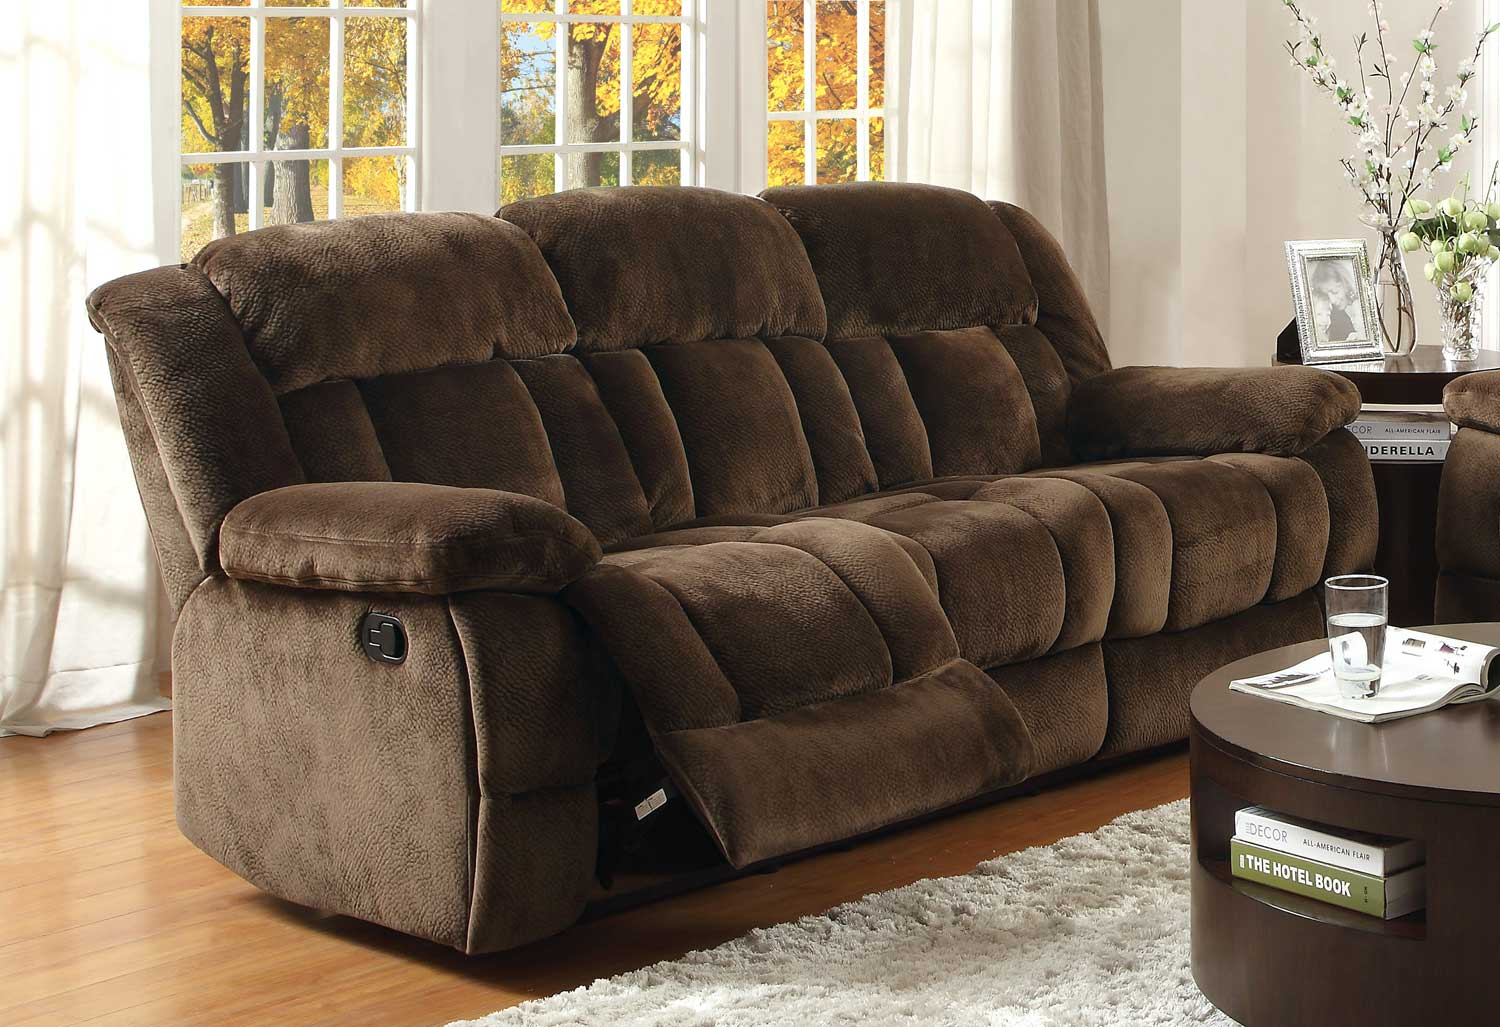 Homelegance Laurelton Double Reclining Sofa - Chocolate - Textured Plush Microfiber & Homelegance Laurelton Double Reclining Sofa - Chocolate - Textured ... islam-shia.org